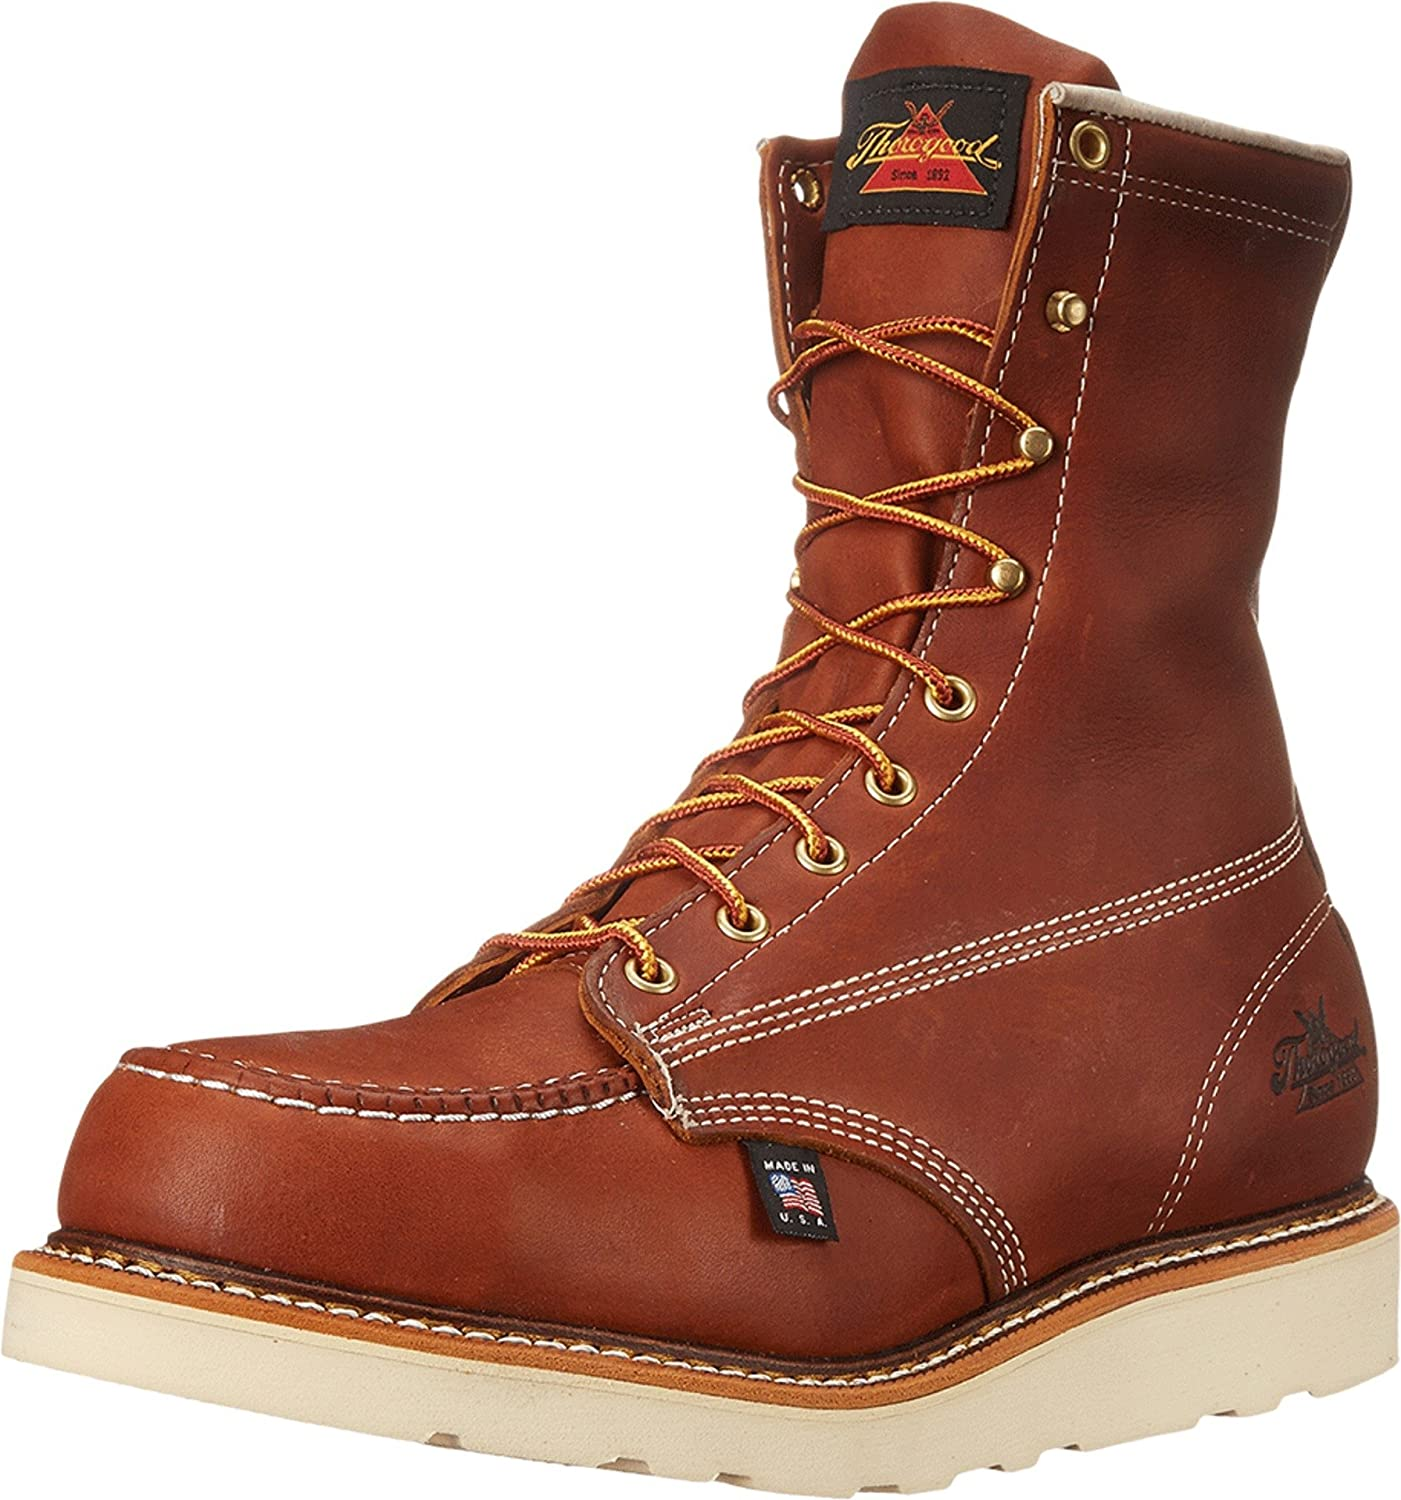 8 Inch Moc Safety Toe Work Boot